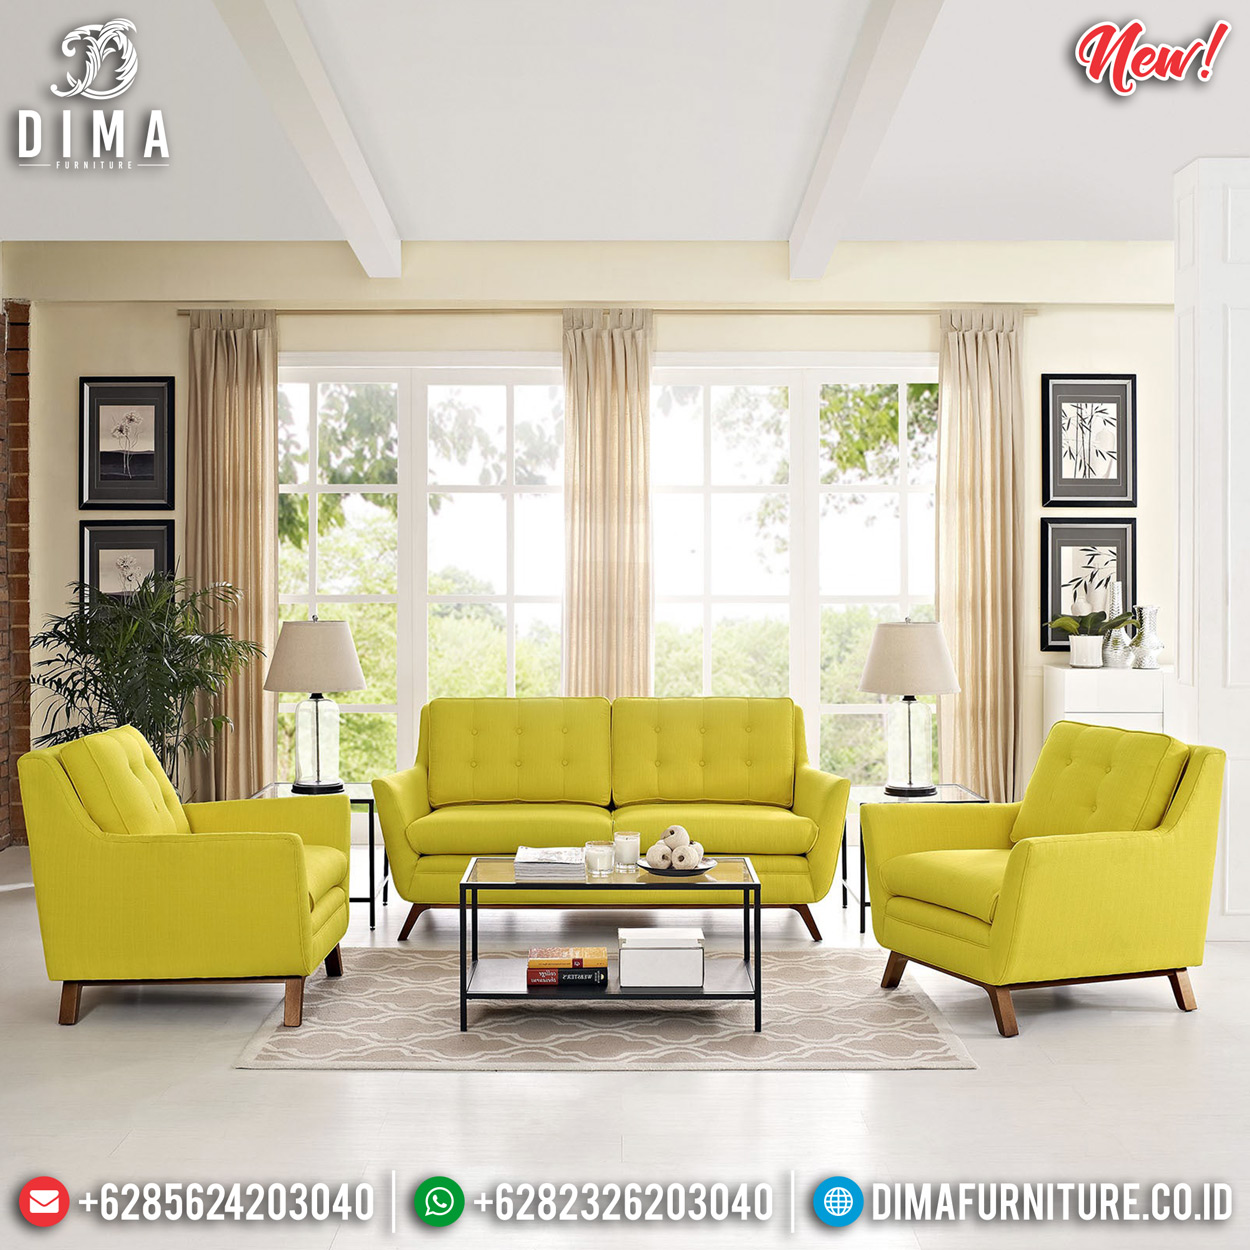 Sale Sofa Ruang Tamu Minimalis Jepara Model Terbaru Natural Jati DF-1296